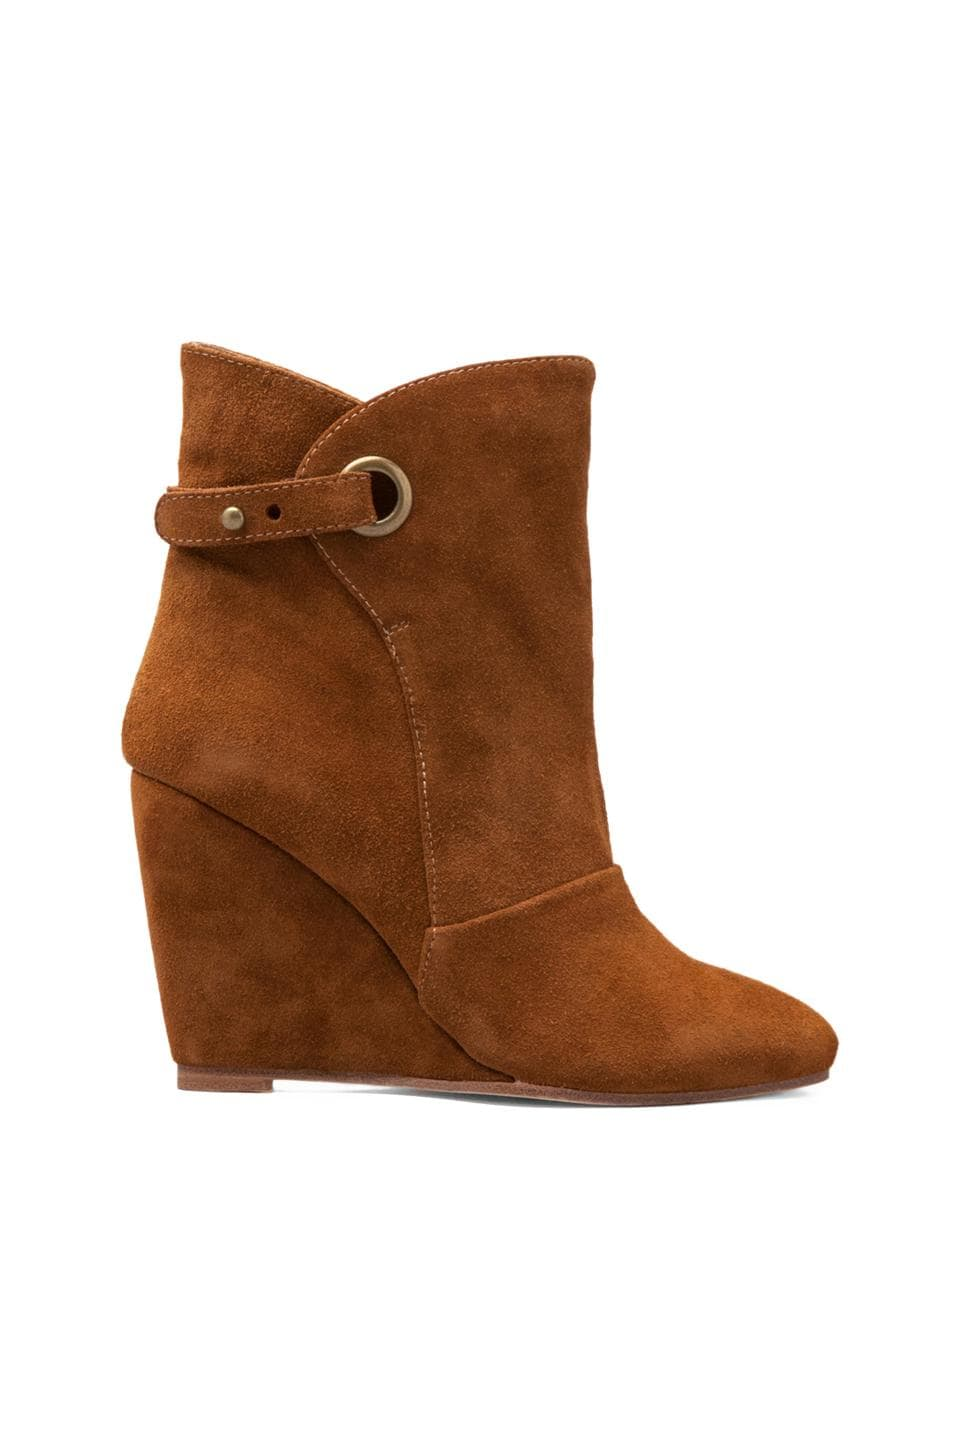 MADISON HARDING Susan Suede Wedge Strap Boot in Brown